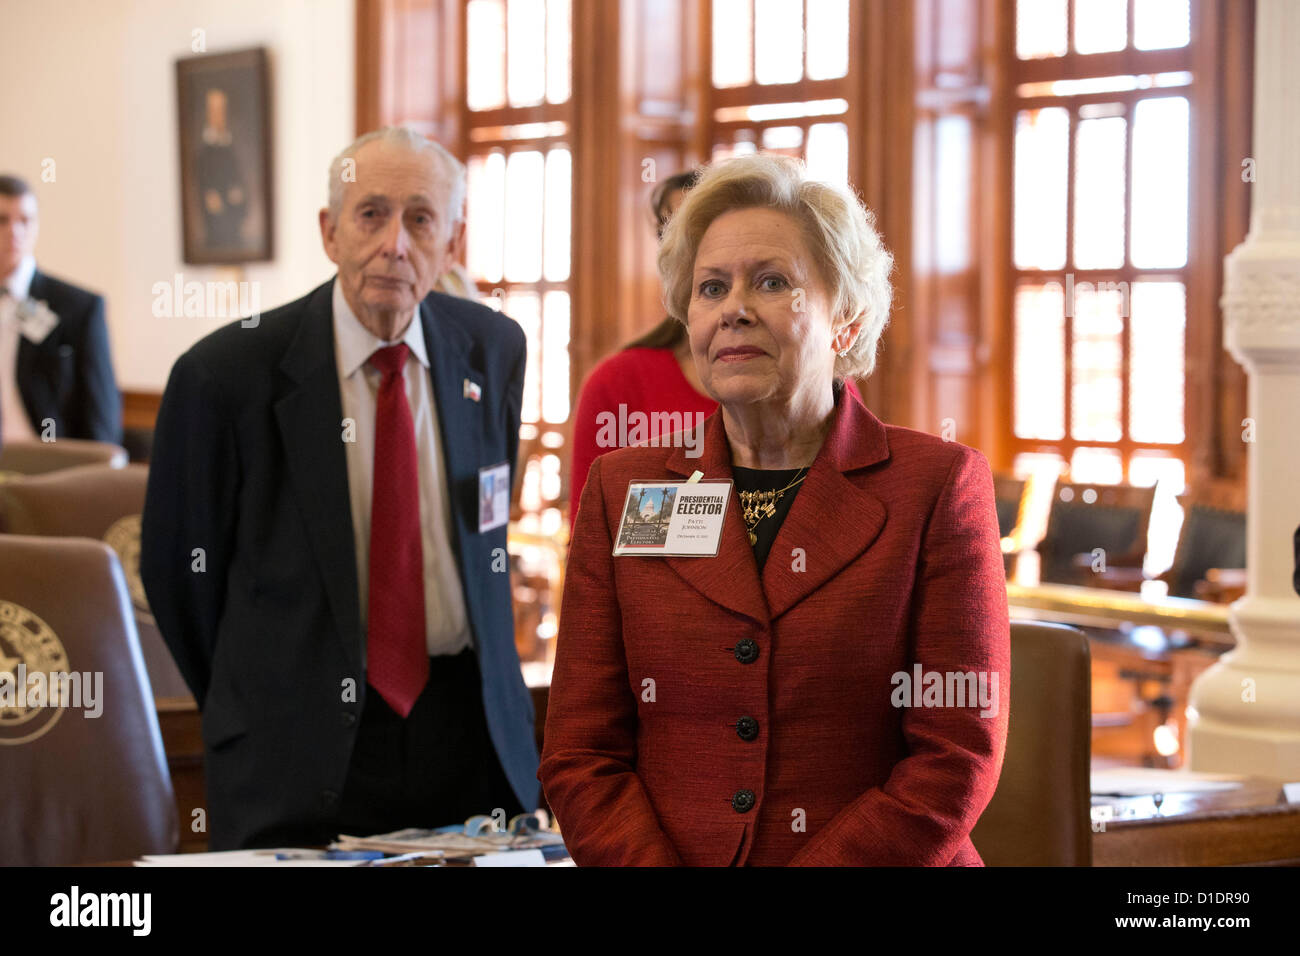 Electors cast ballots as the Texas Electoral College meet at the Capitol in Austin, Texas. Stock Photo